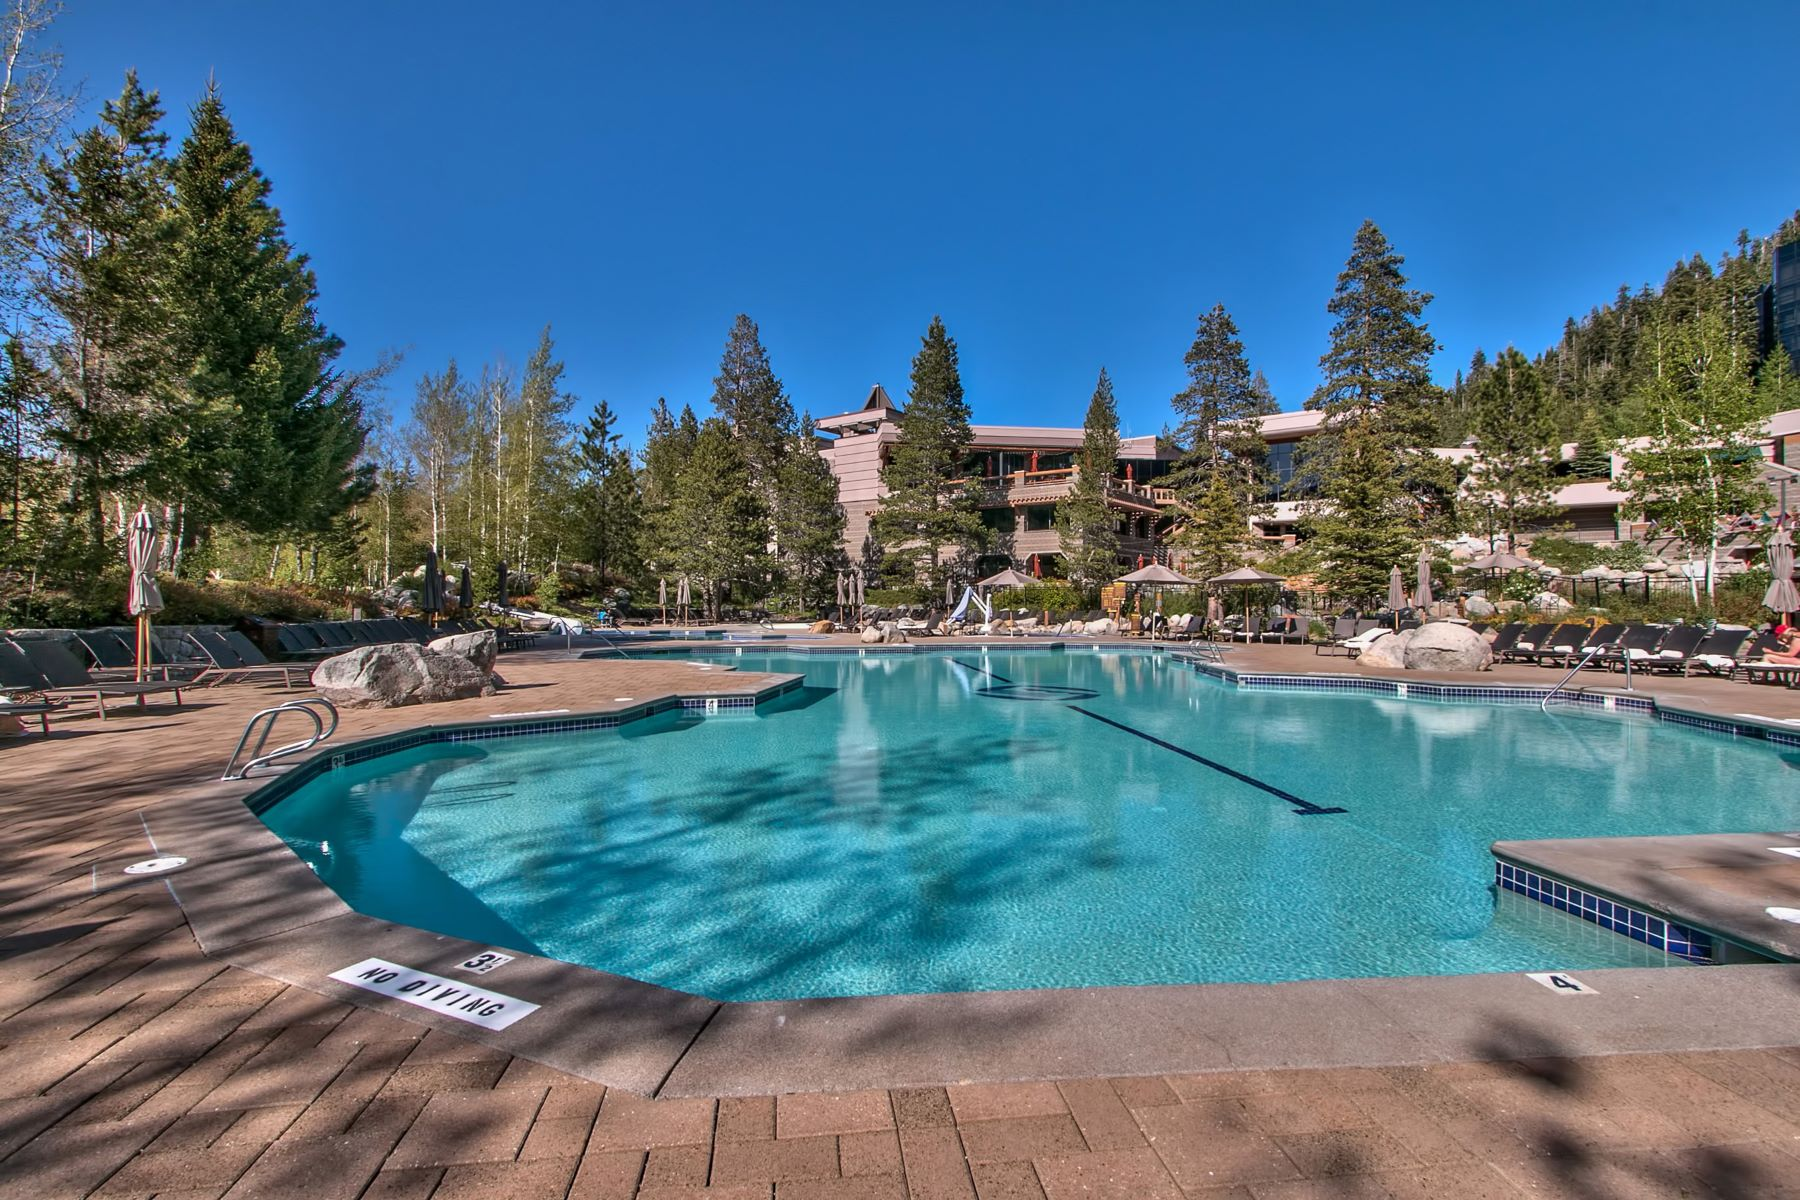 Additional photo for property listing at 400 Squaw Creek Road, #434-436, Olympic Valley, California 96146 400 Squaw Creek Road #434-436 Olympic Valley, California 96146 United States